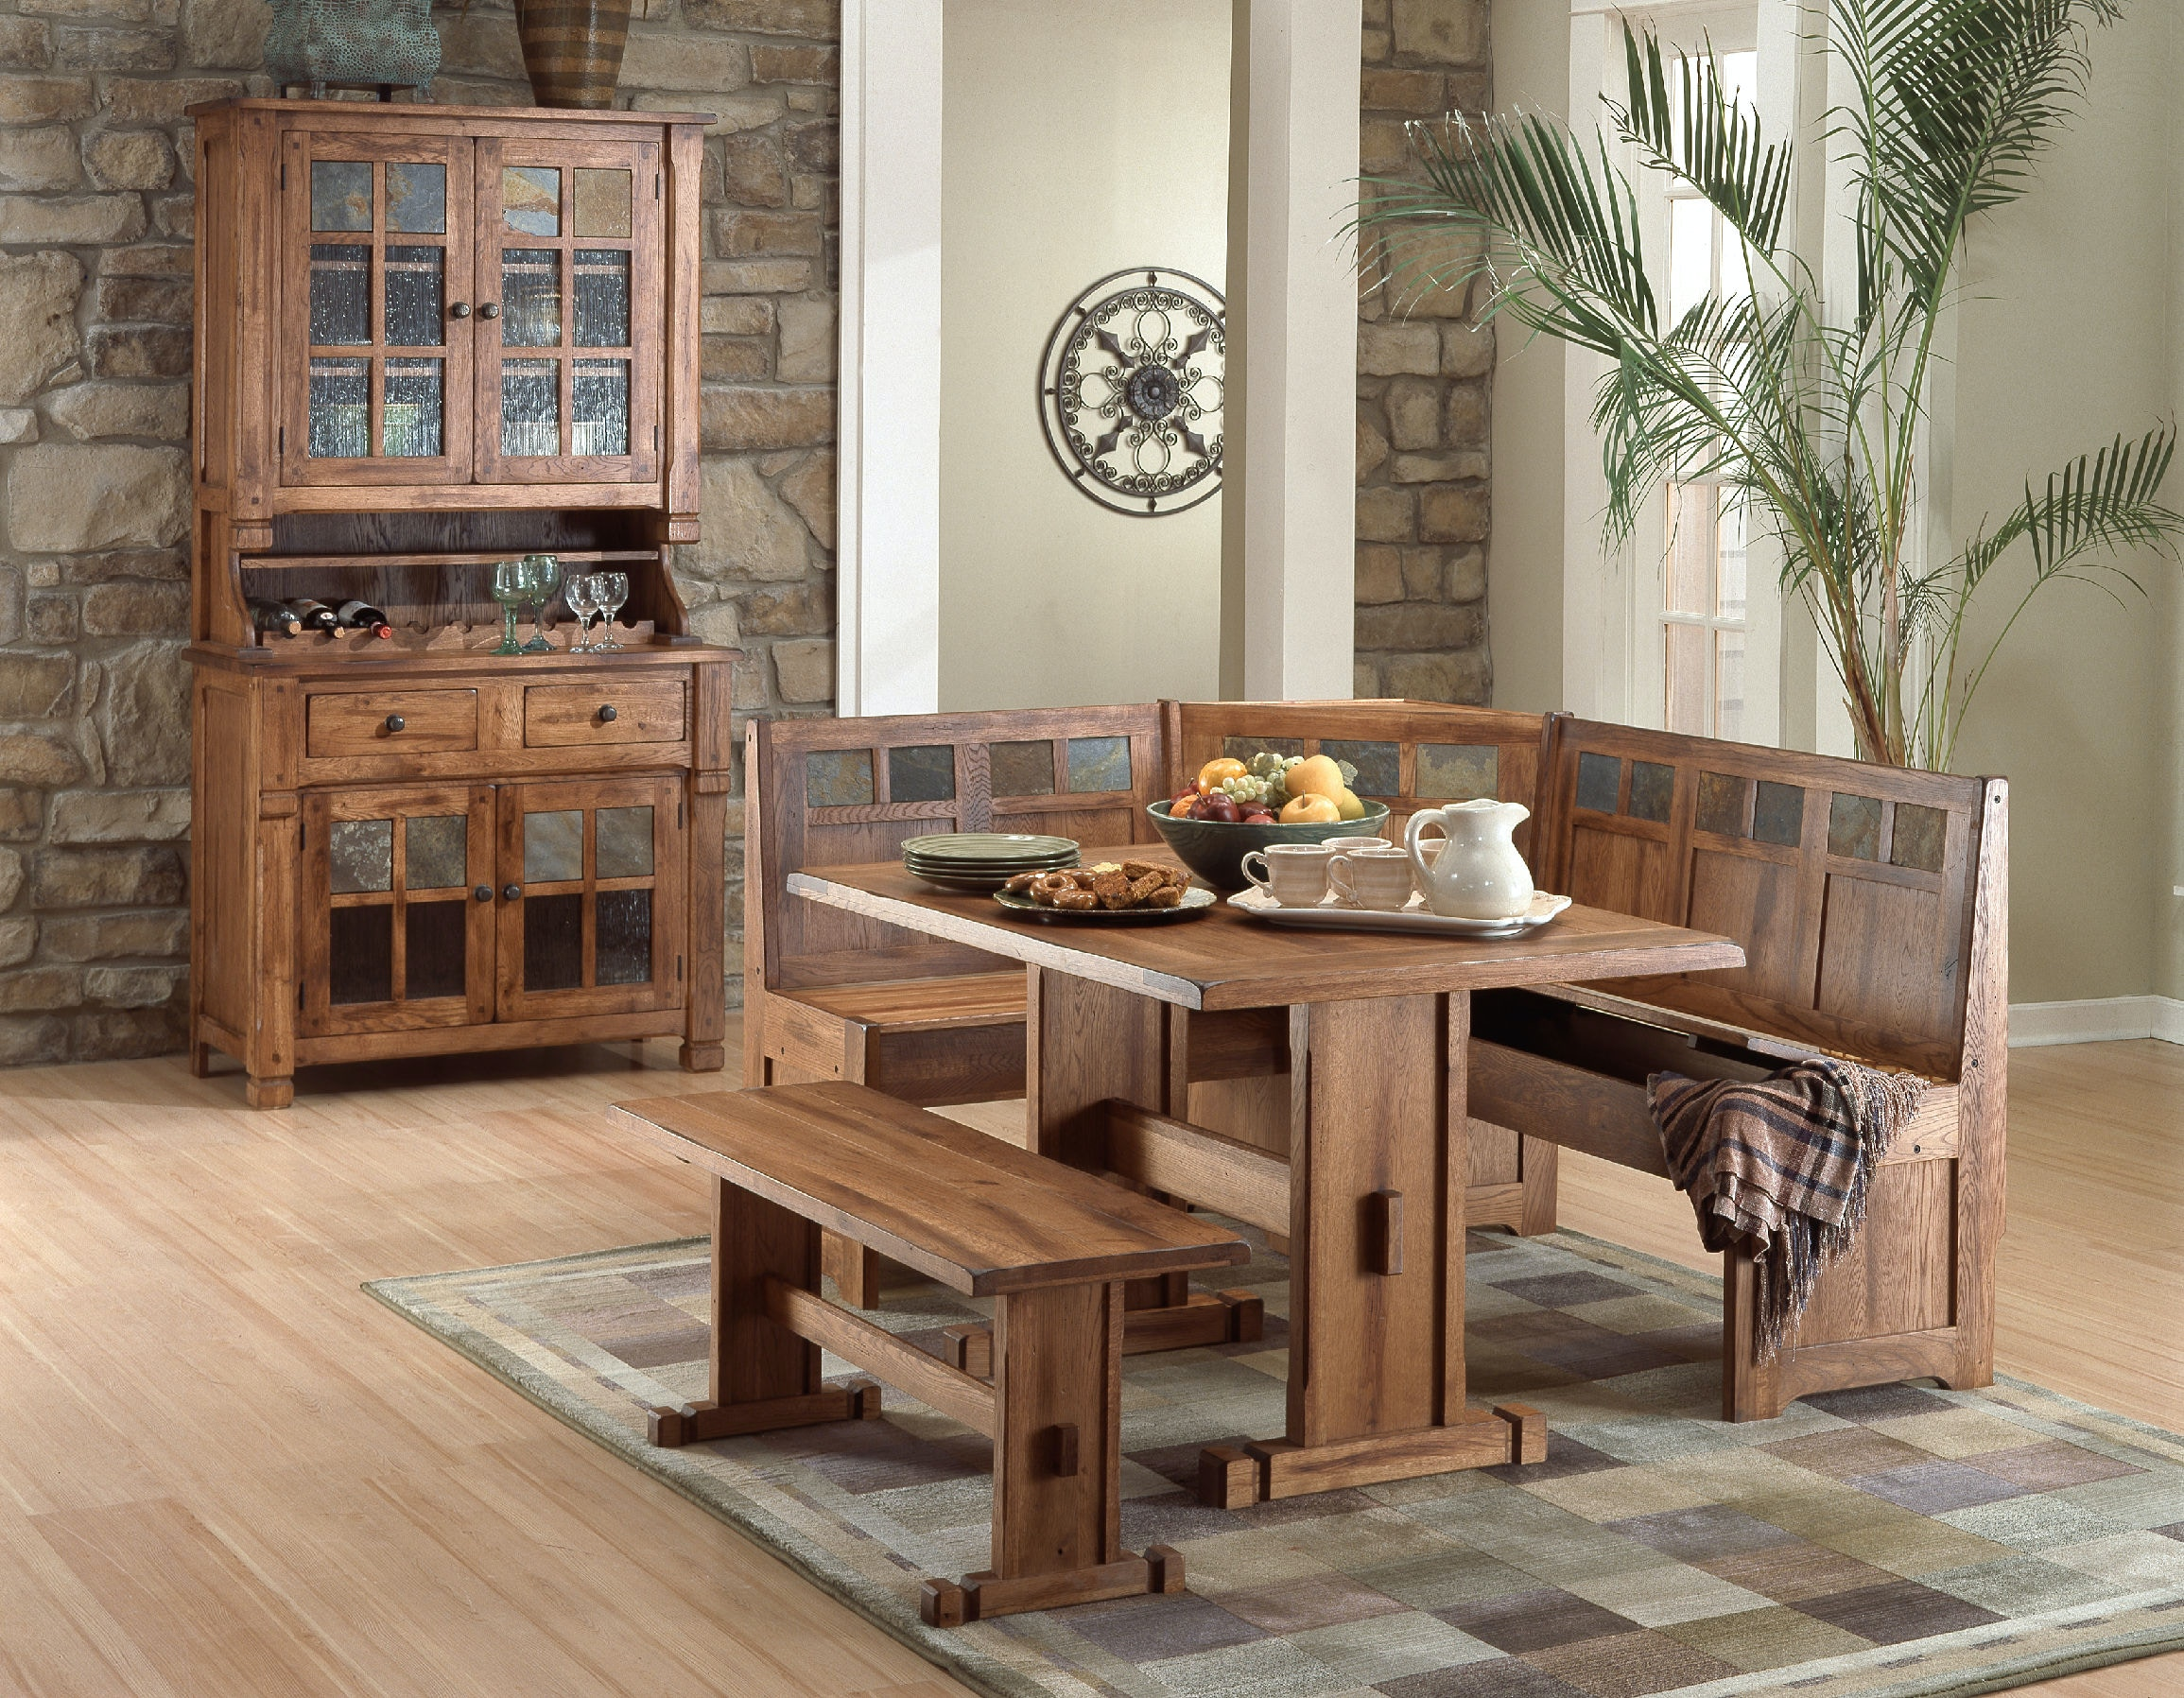 Sunny Designs Dining Room Sedona Breakfast Nook Set With Side Bench 0219RO  At Simply Discount Furniture